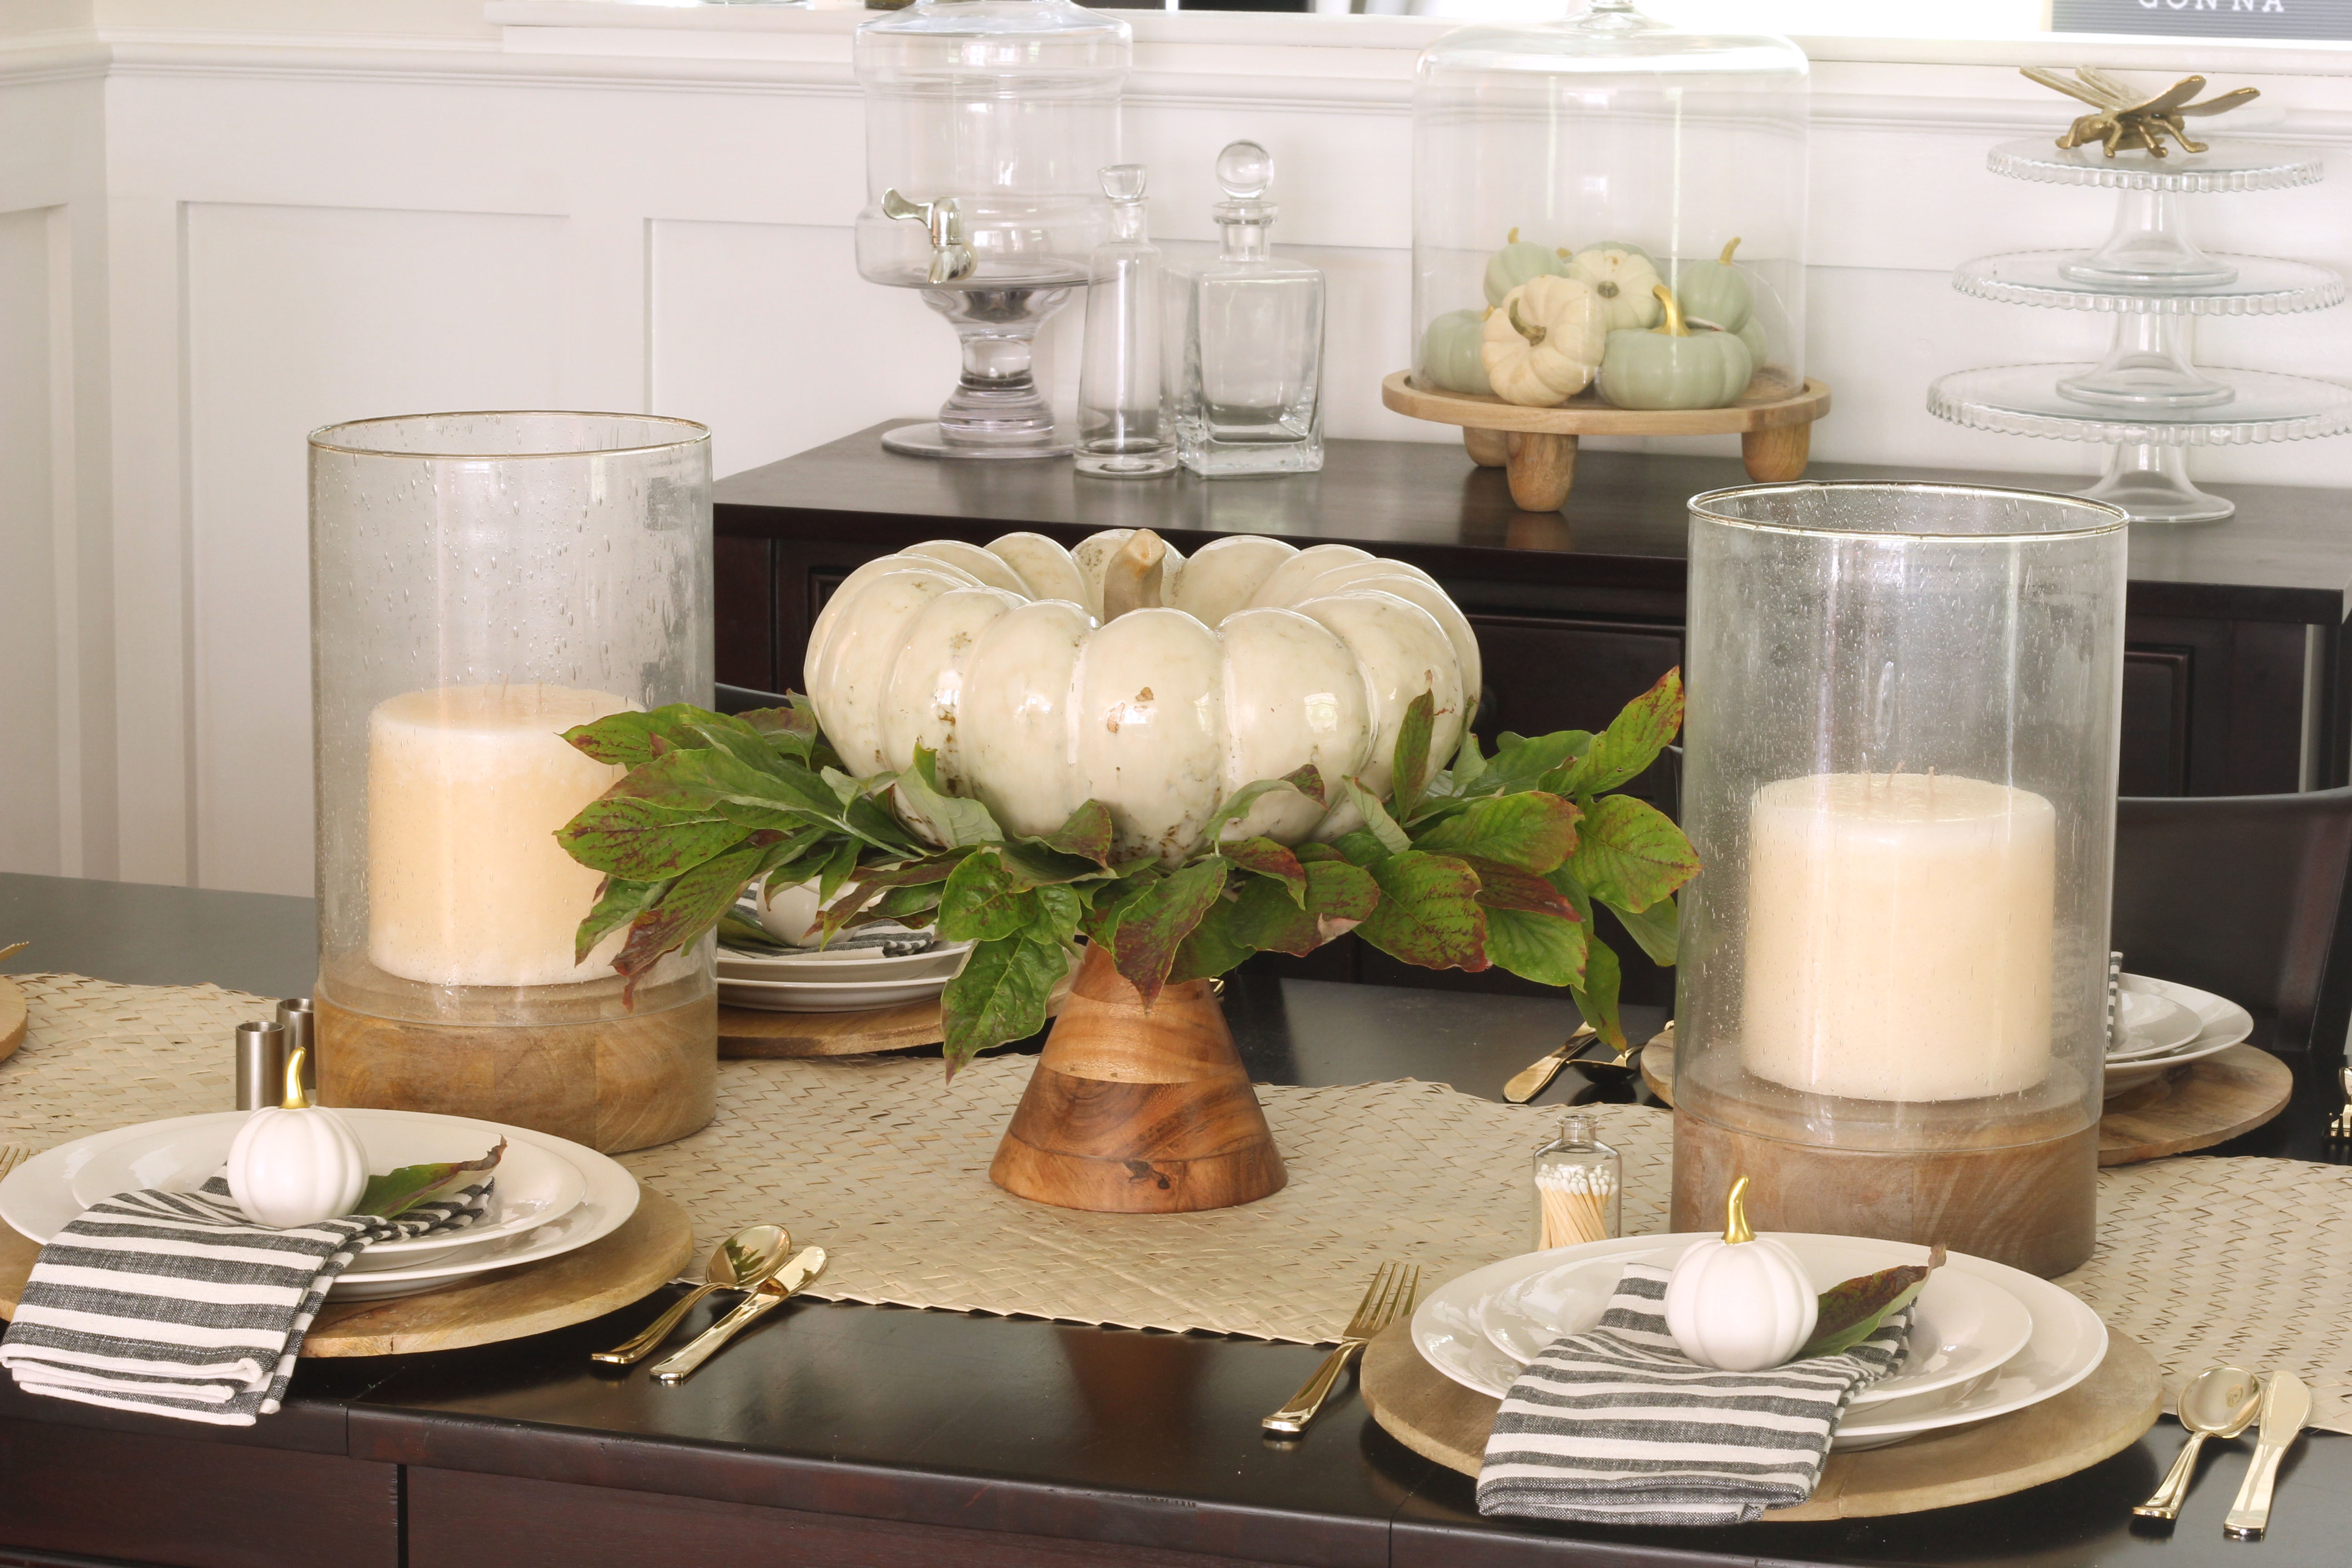 Last week I teamed up with some lovely ladies on Instagram to bring you all a fall home tour! Hopefully you joined us! Today I'm sharing some more fall inspiration from my home. There all affordable and easy ways to cozy up your home this autumn!